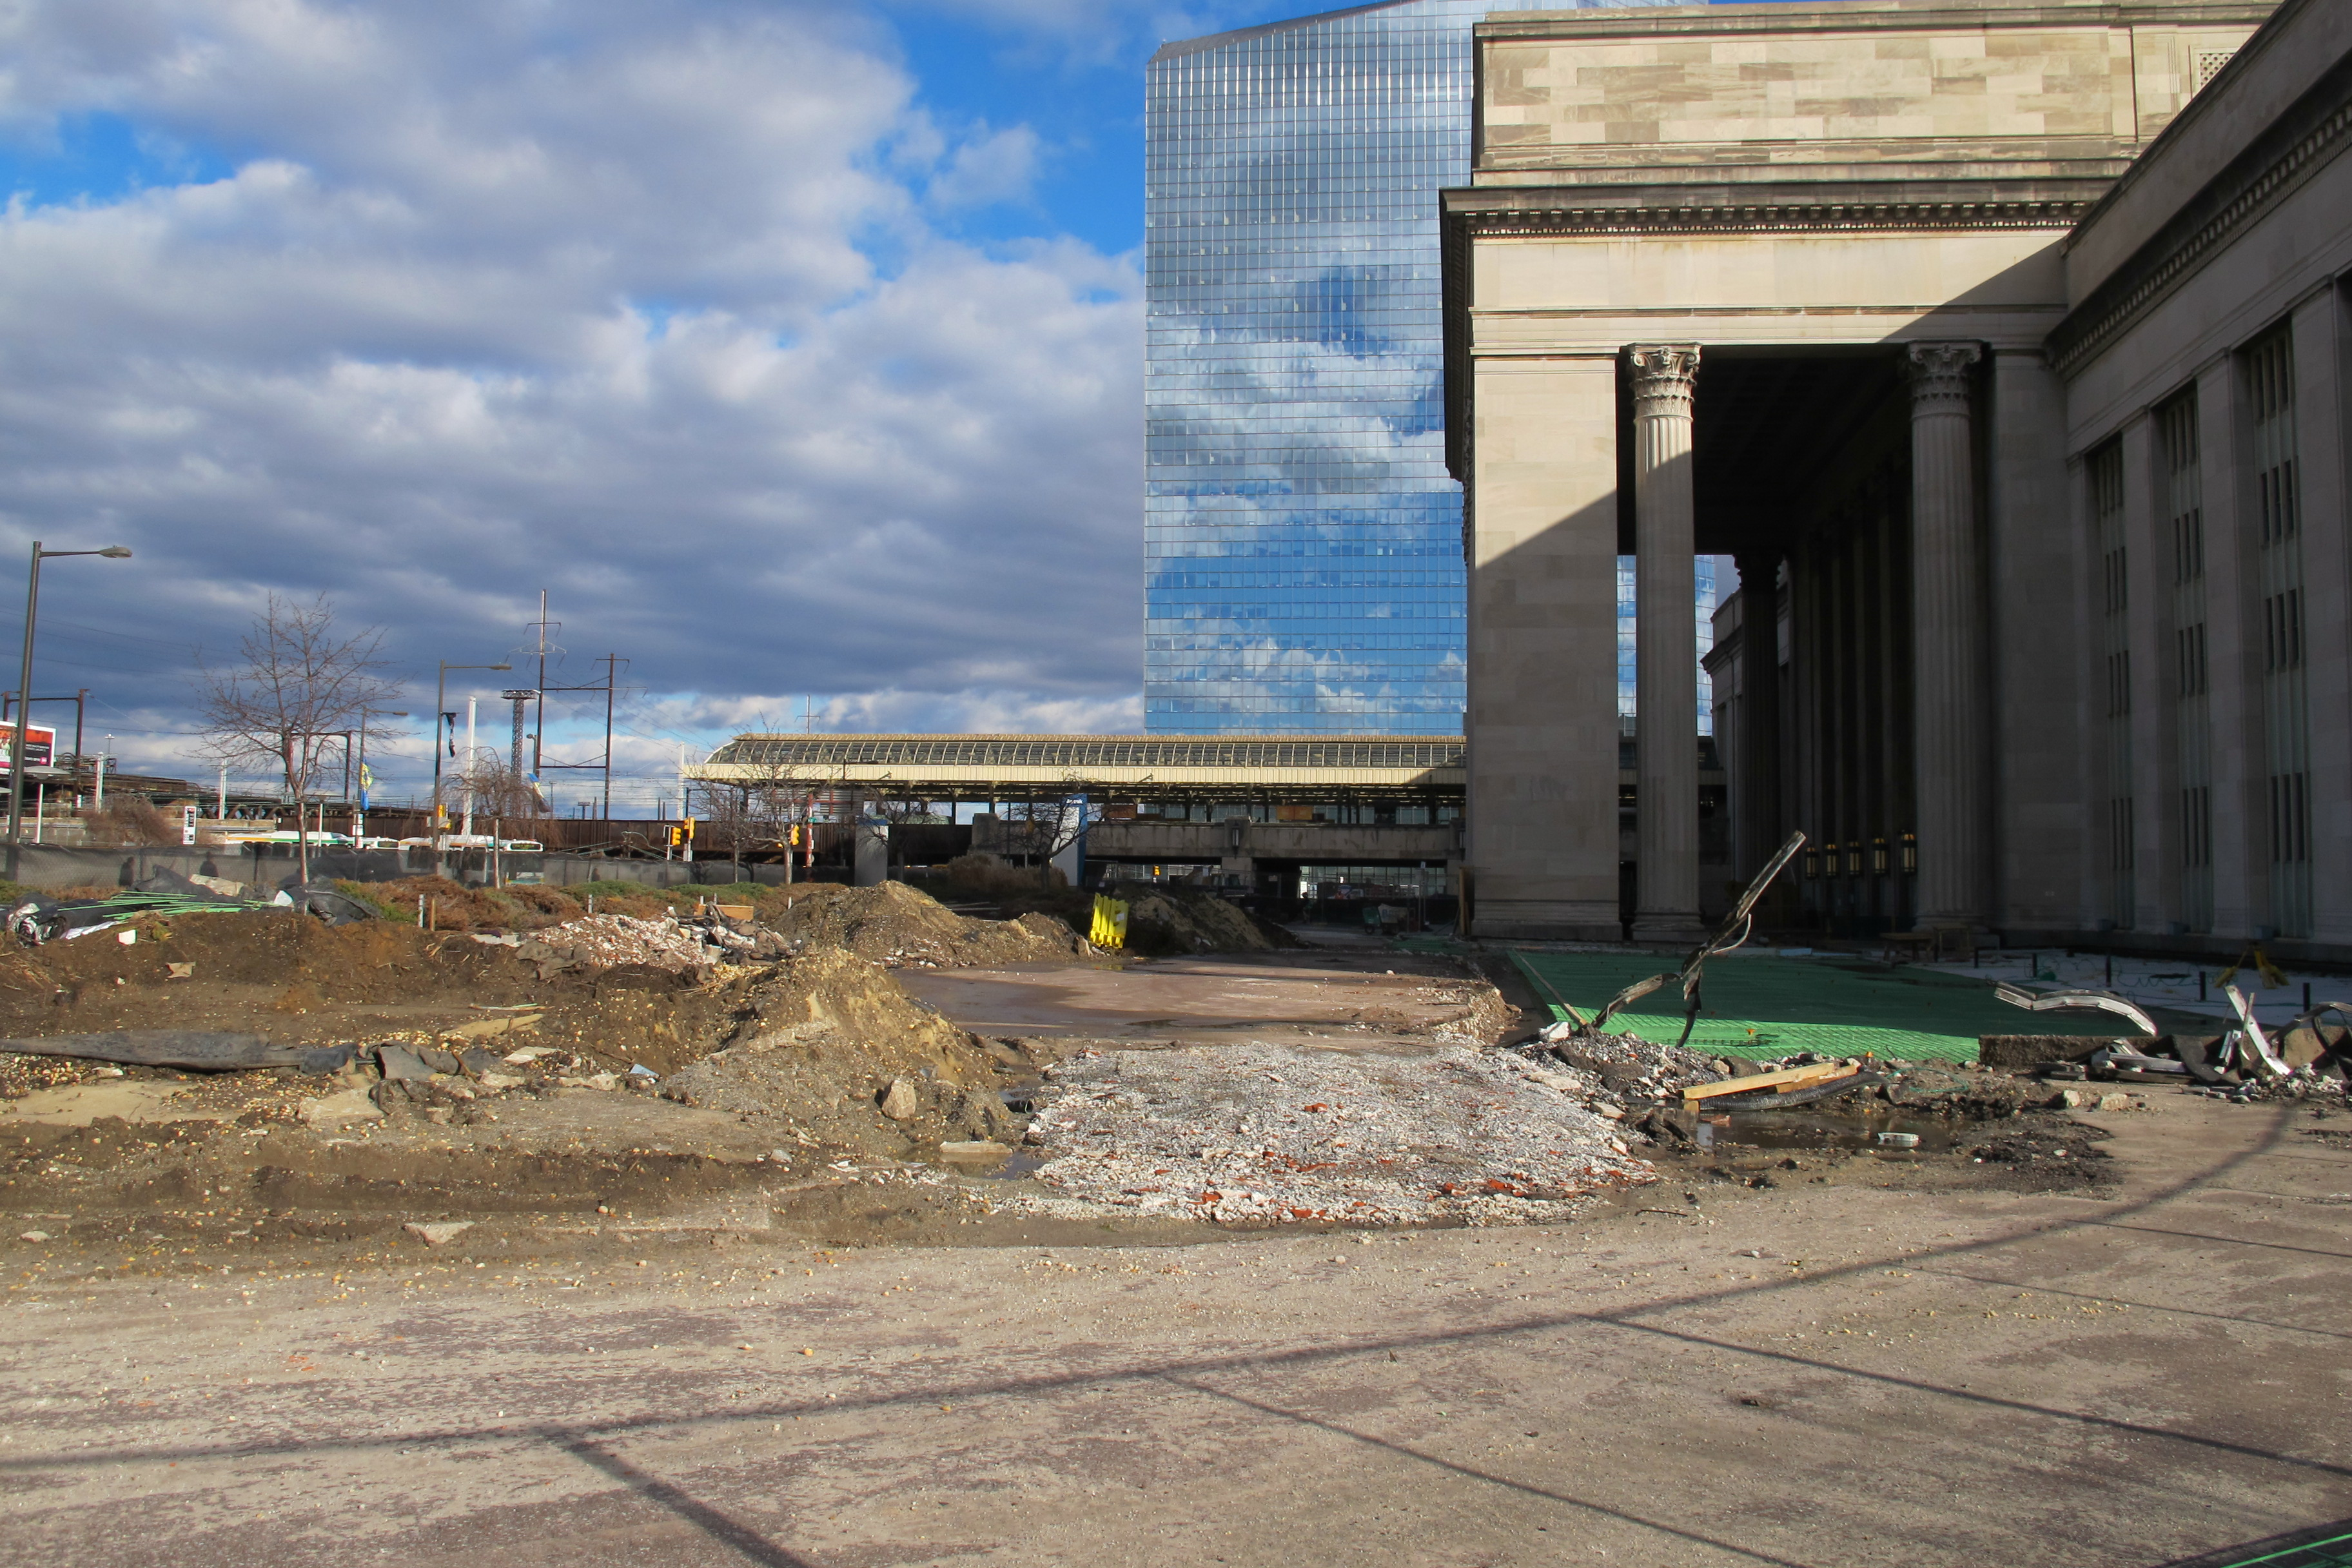 Construction on 30th Street Station's western side. (Or, what's hiding behind that cool looking fence.) January 2013.